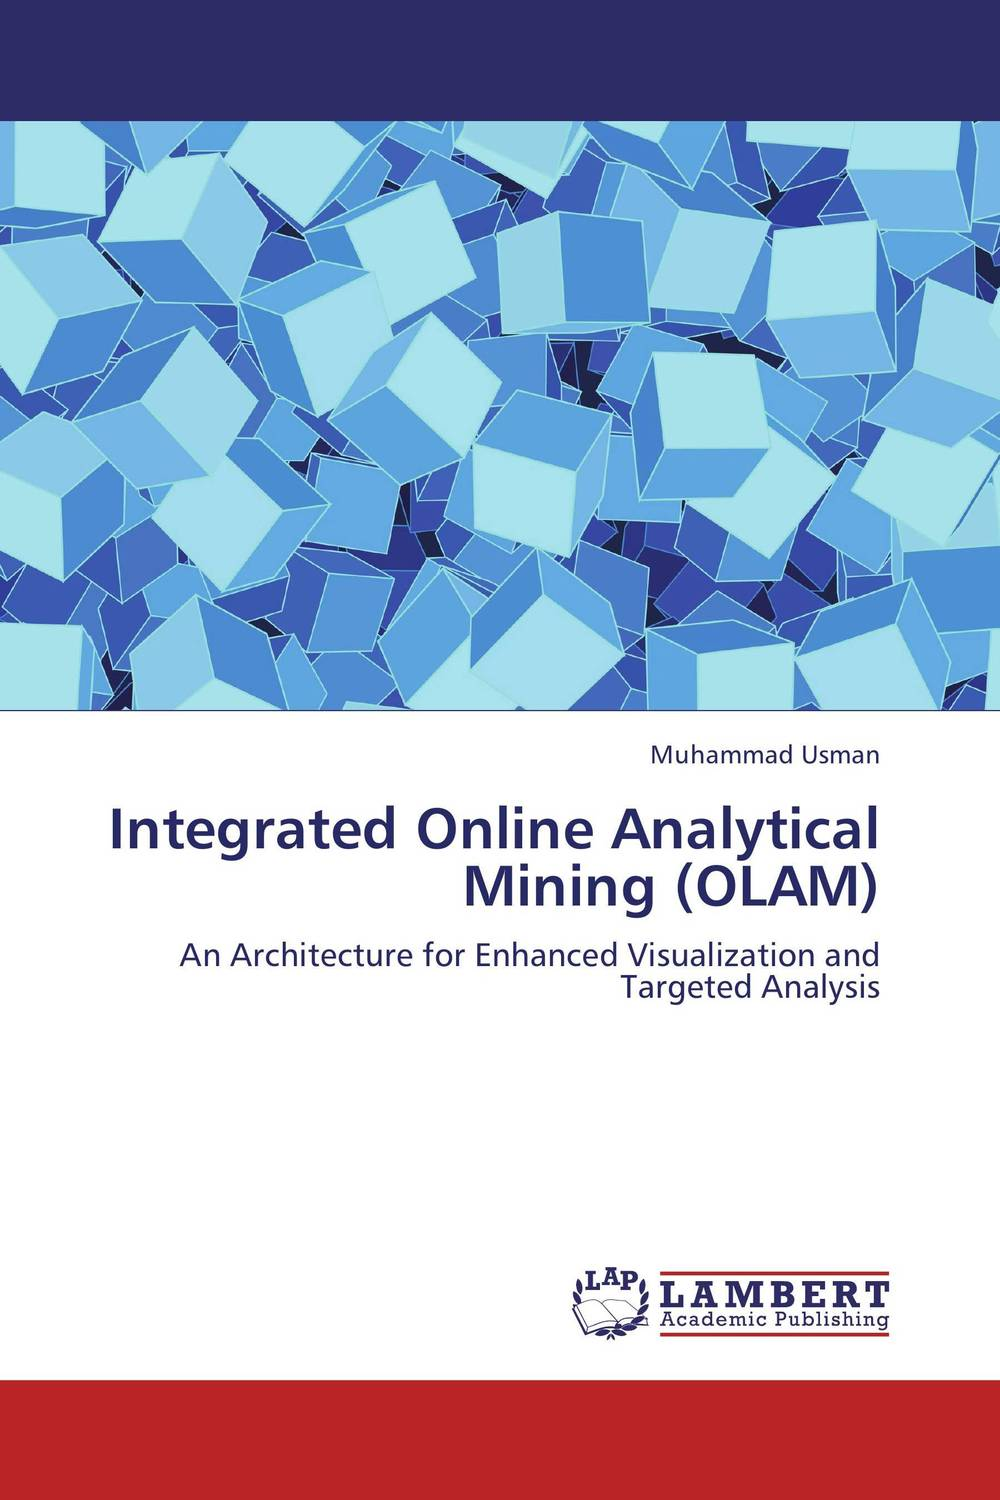 Integrated Online Analytical Mining (OLAM) dilbag singh gill and amit chhabra integrated multilevel checkpointing techniques and greencloud